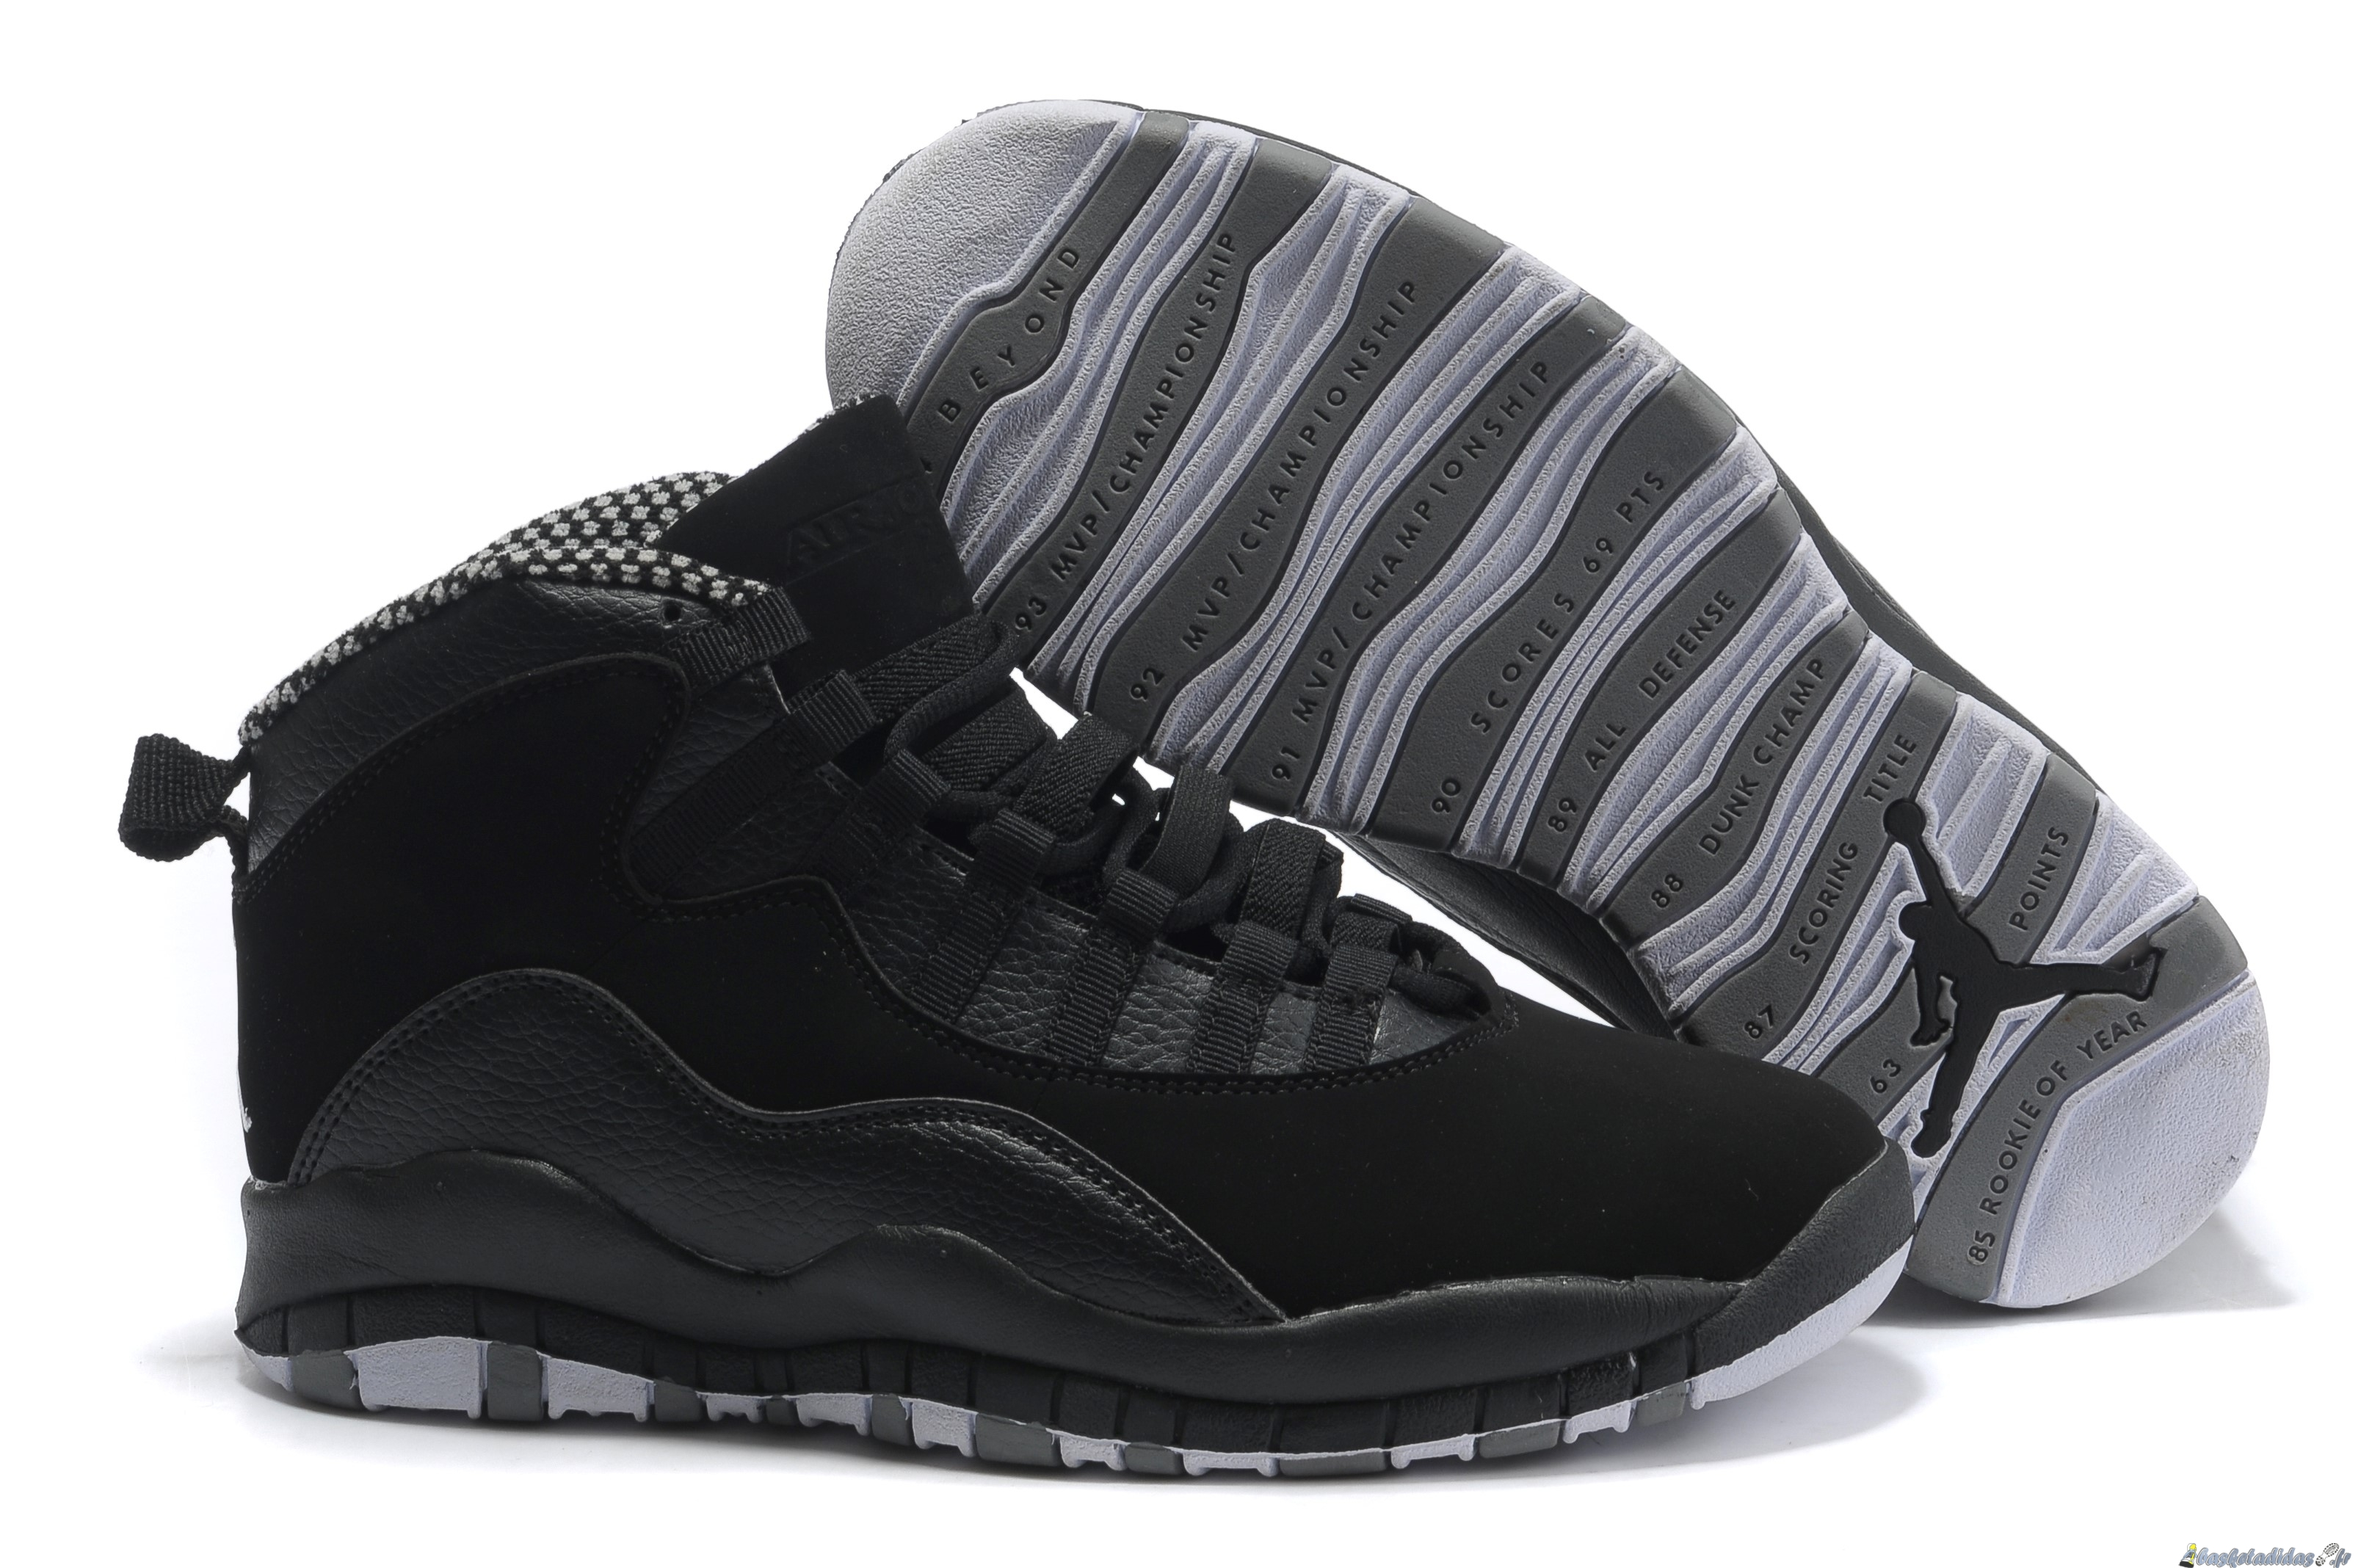 vente air jordan 10 chaussure de basket pas cher chaussure nike escompte. Black Bedroom Furniture Sets. Home Design Ideas